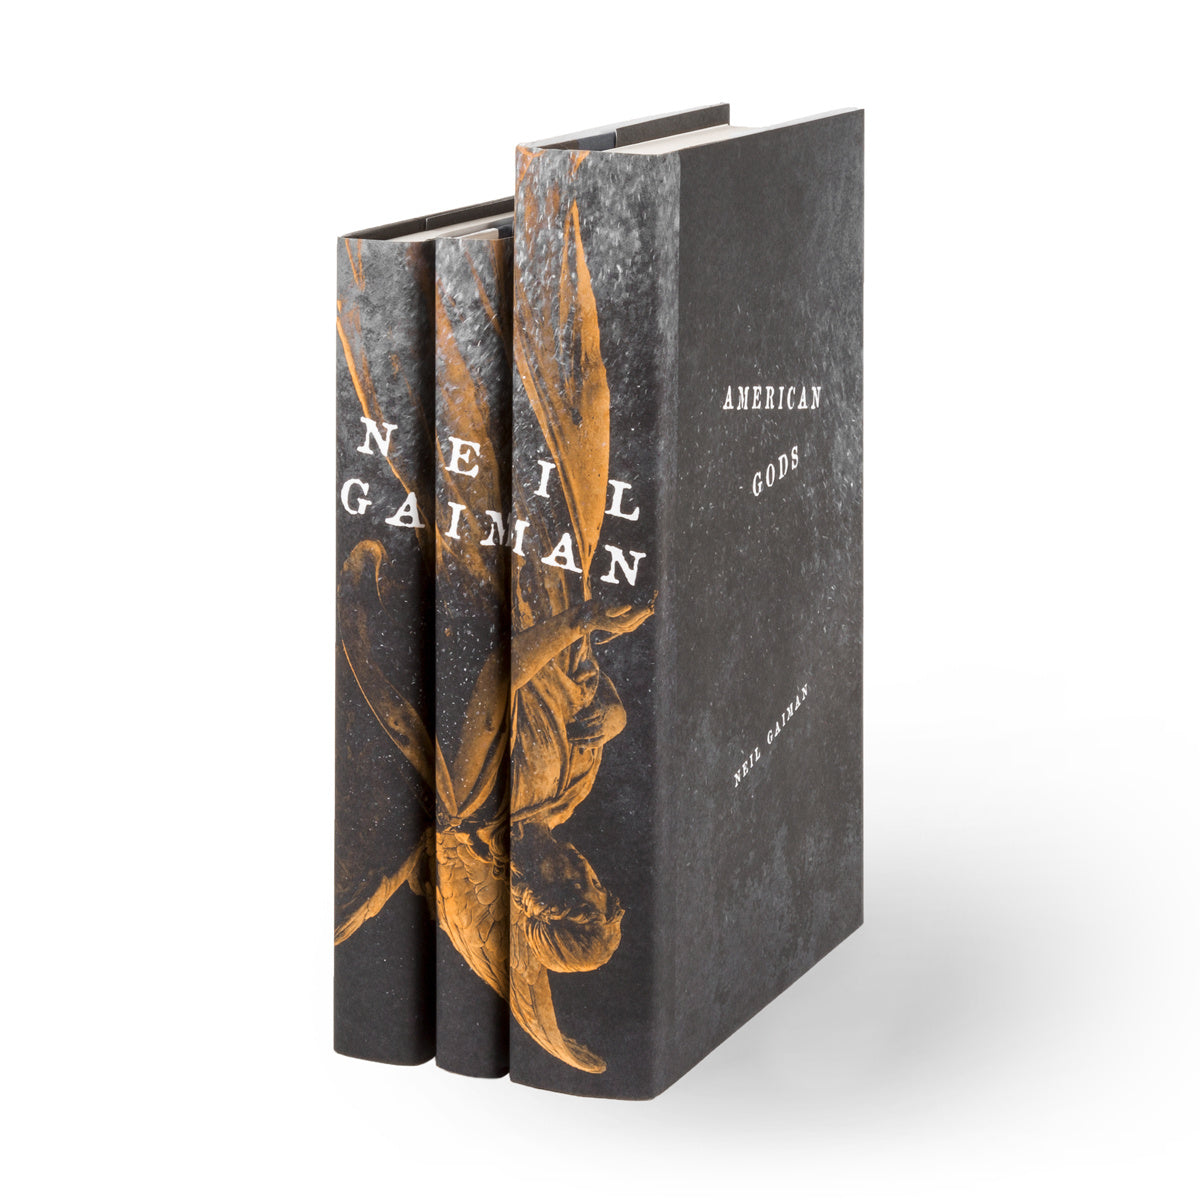 Angled View of Neil Gaiman book set featuring american gods